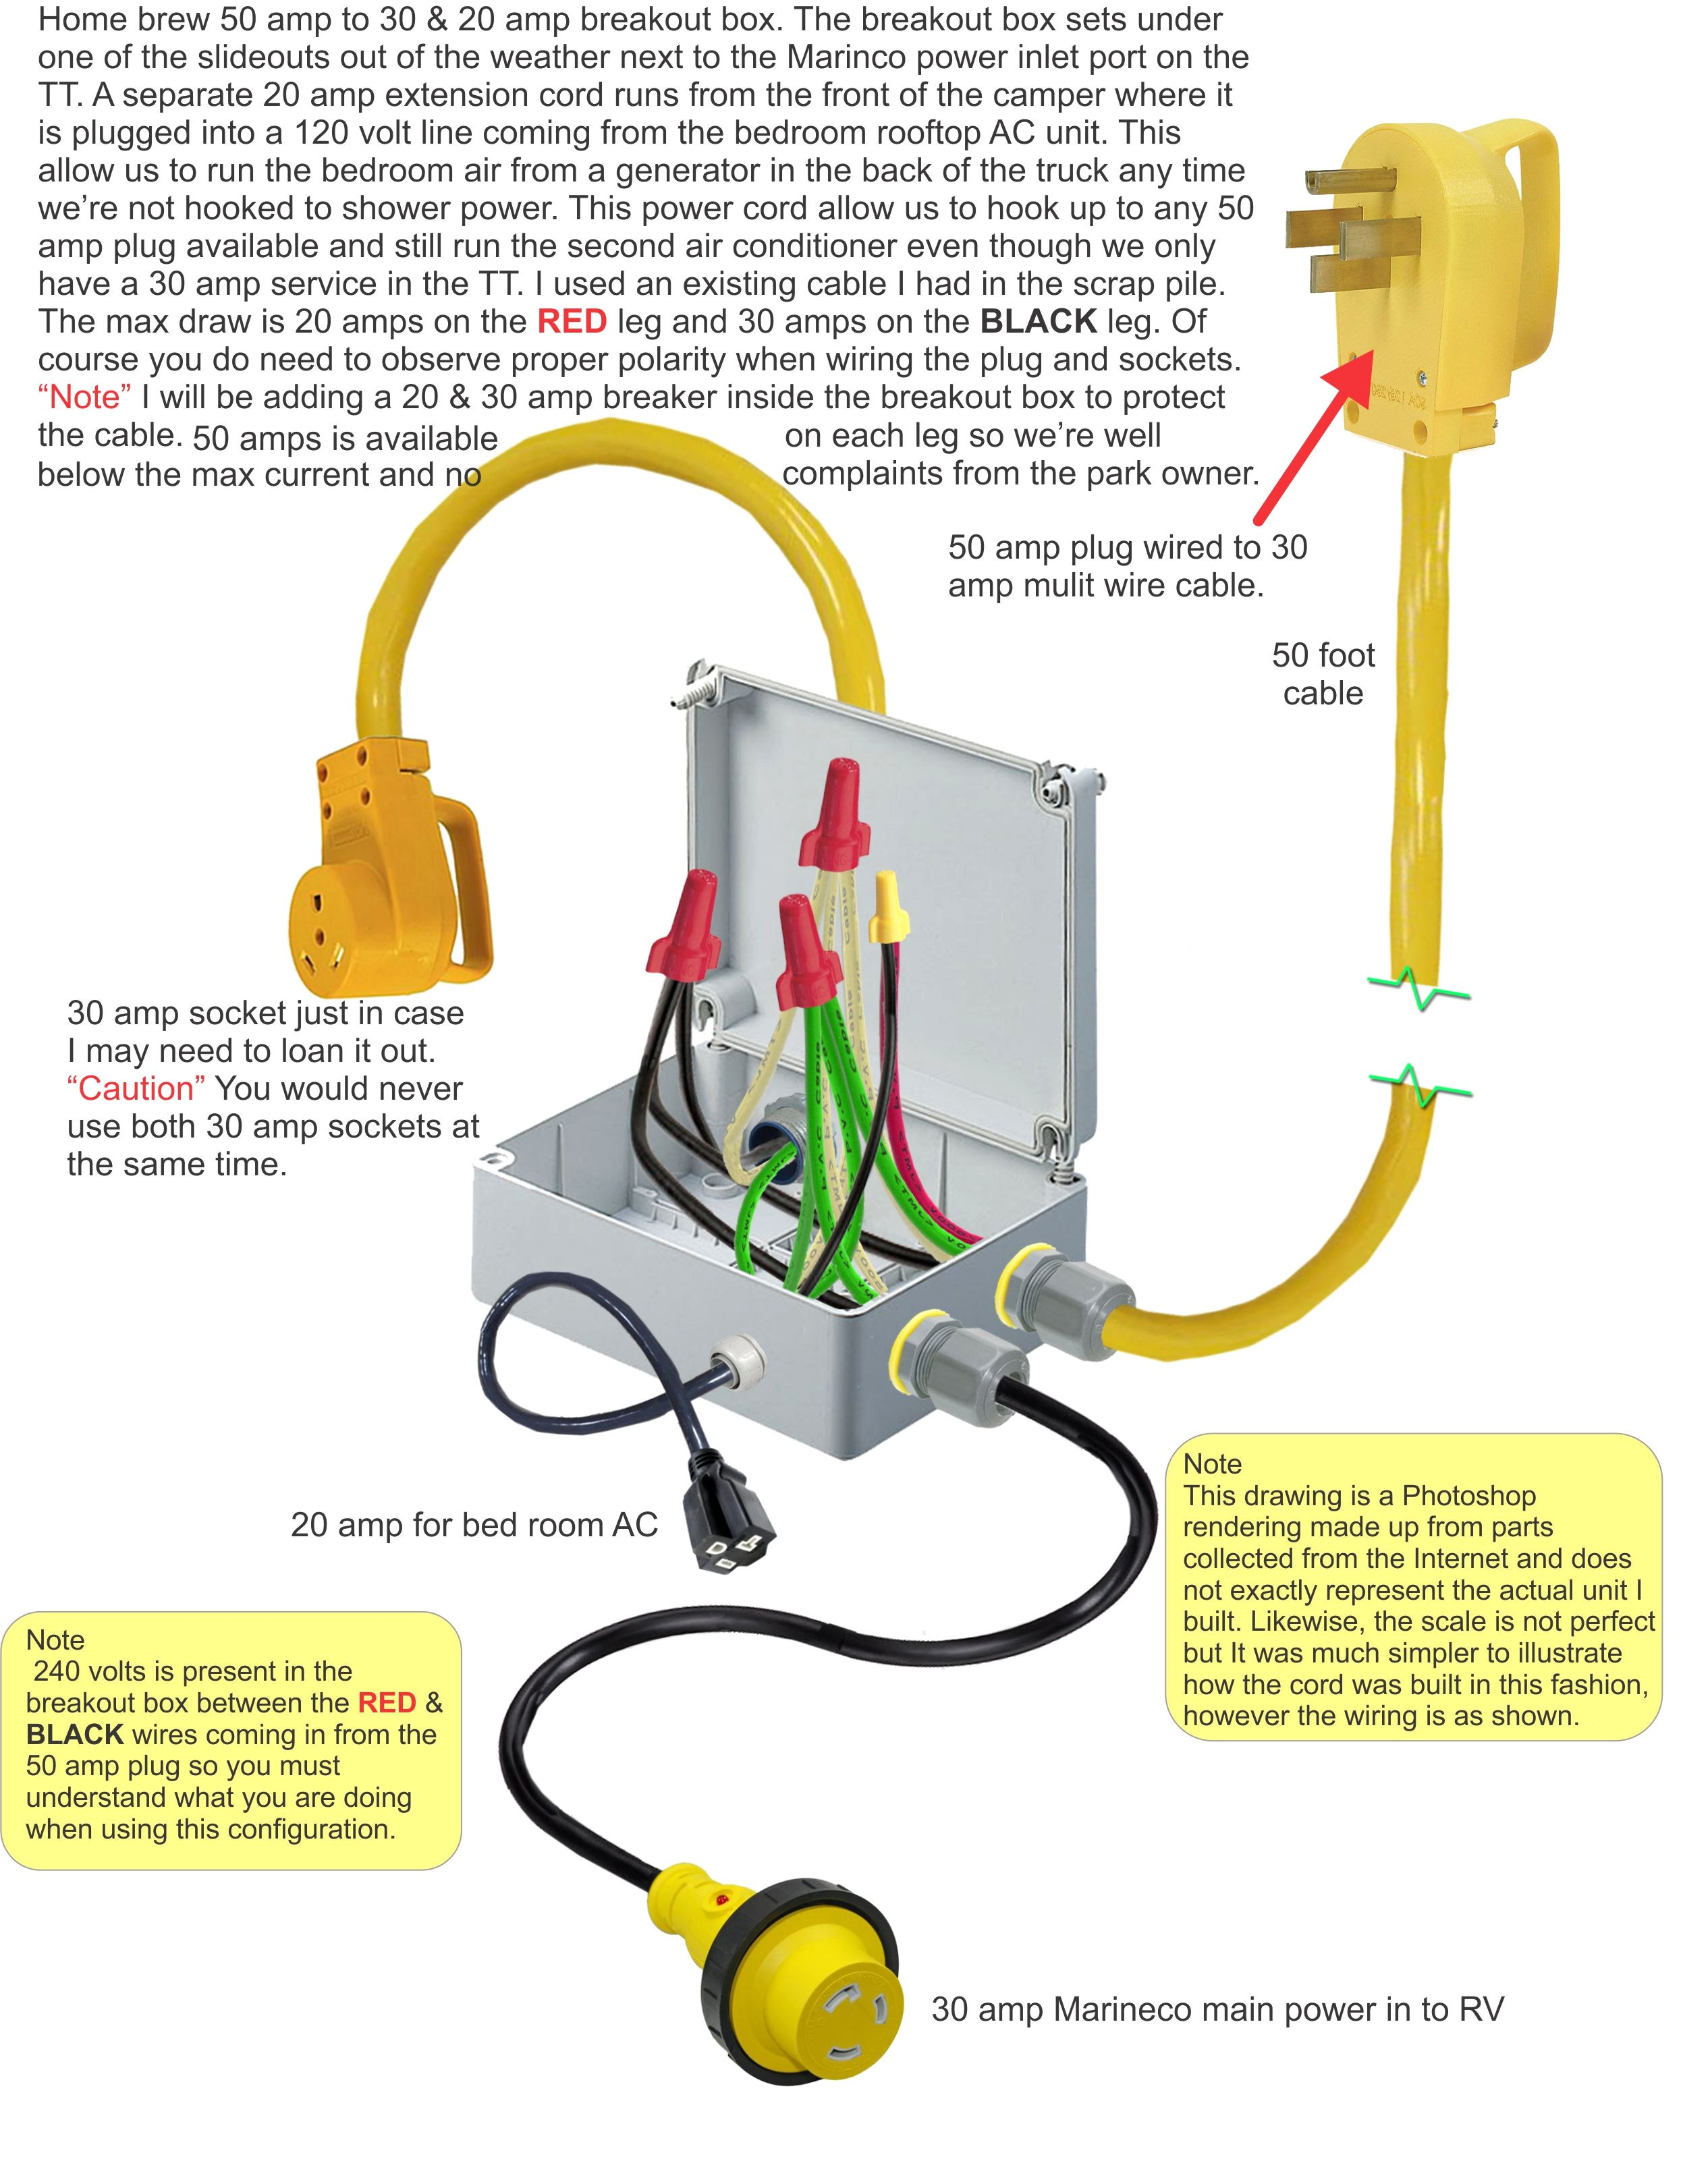 Adapter 50 Amp Rv Plug Wiring Diagram | Wiring Diagram - 50 Amp To 30 Amp Rv Adapter Wiring Diagram